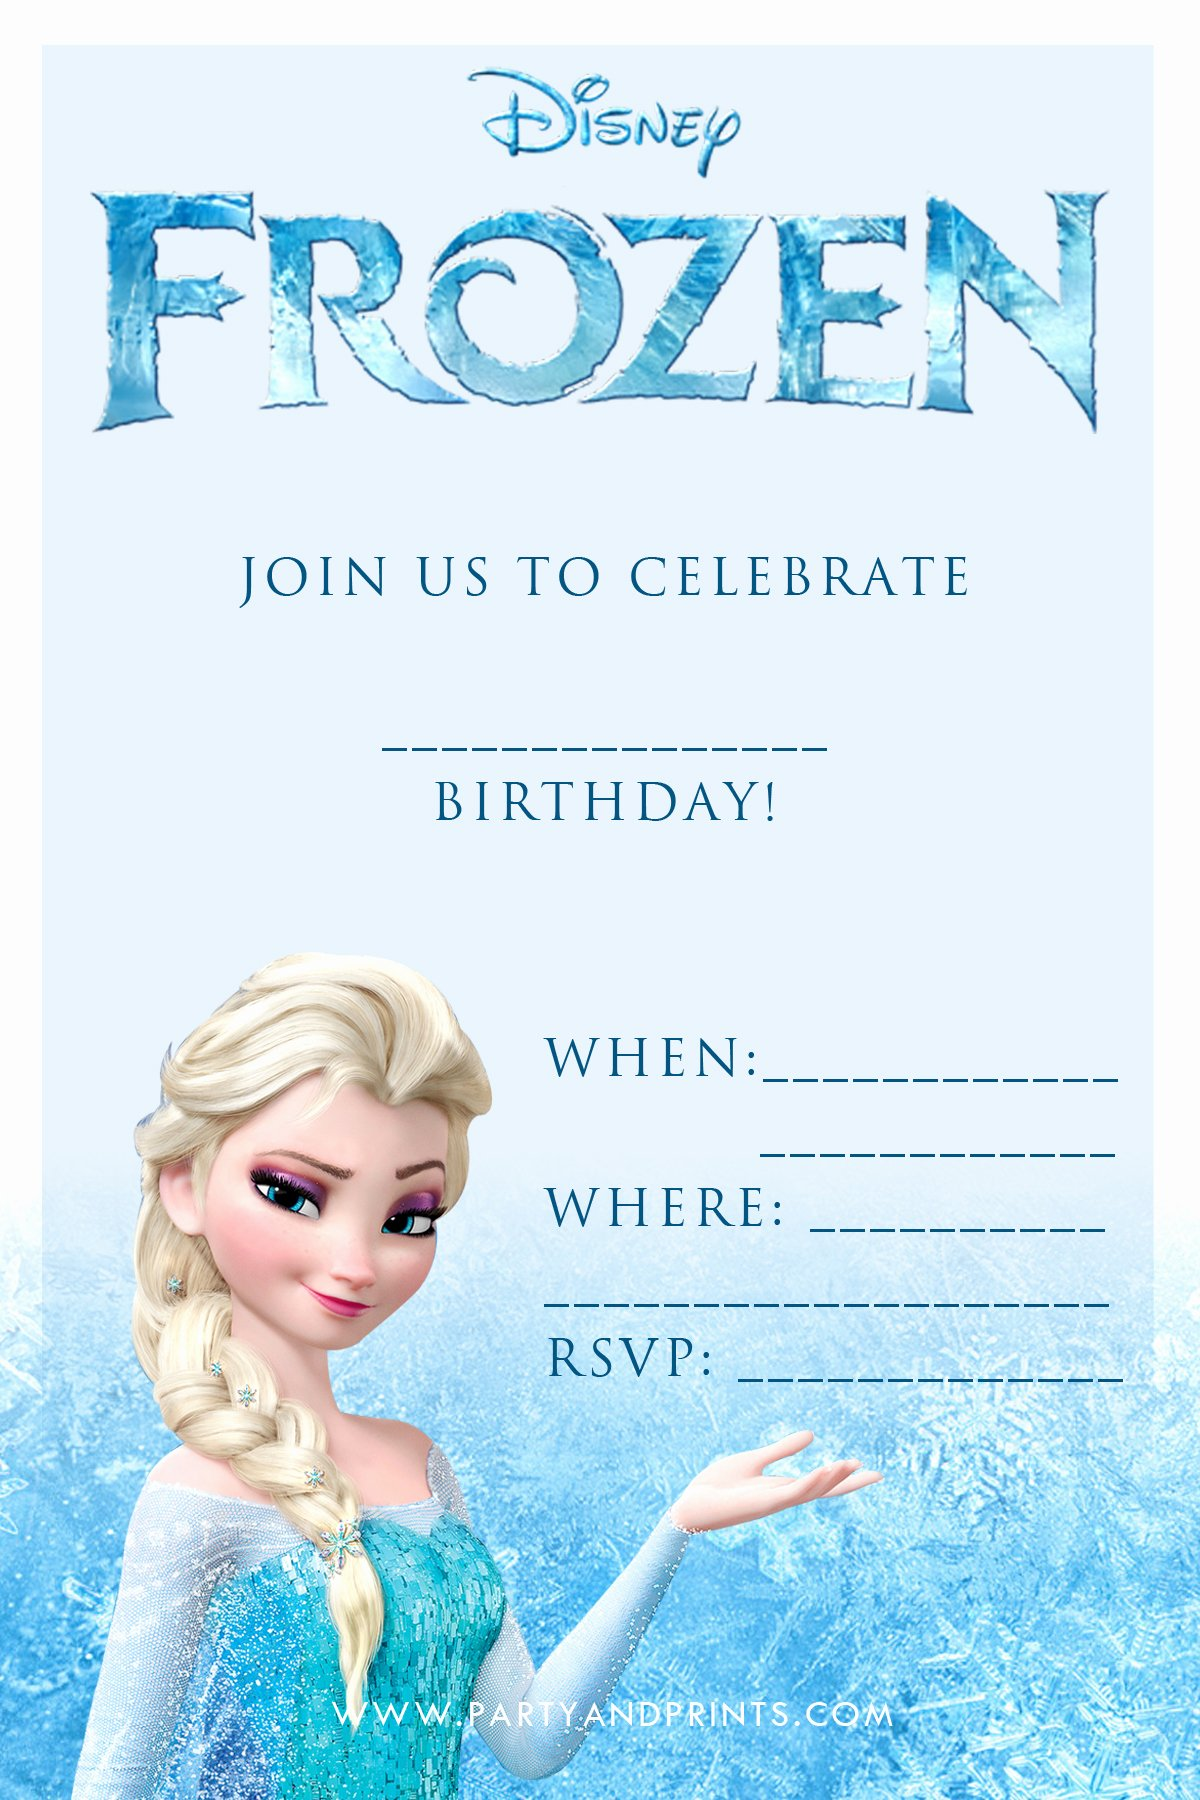 Frozen Birthday Invitations Free Best Of 20 Frozen Birthday Party Ideas